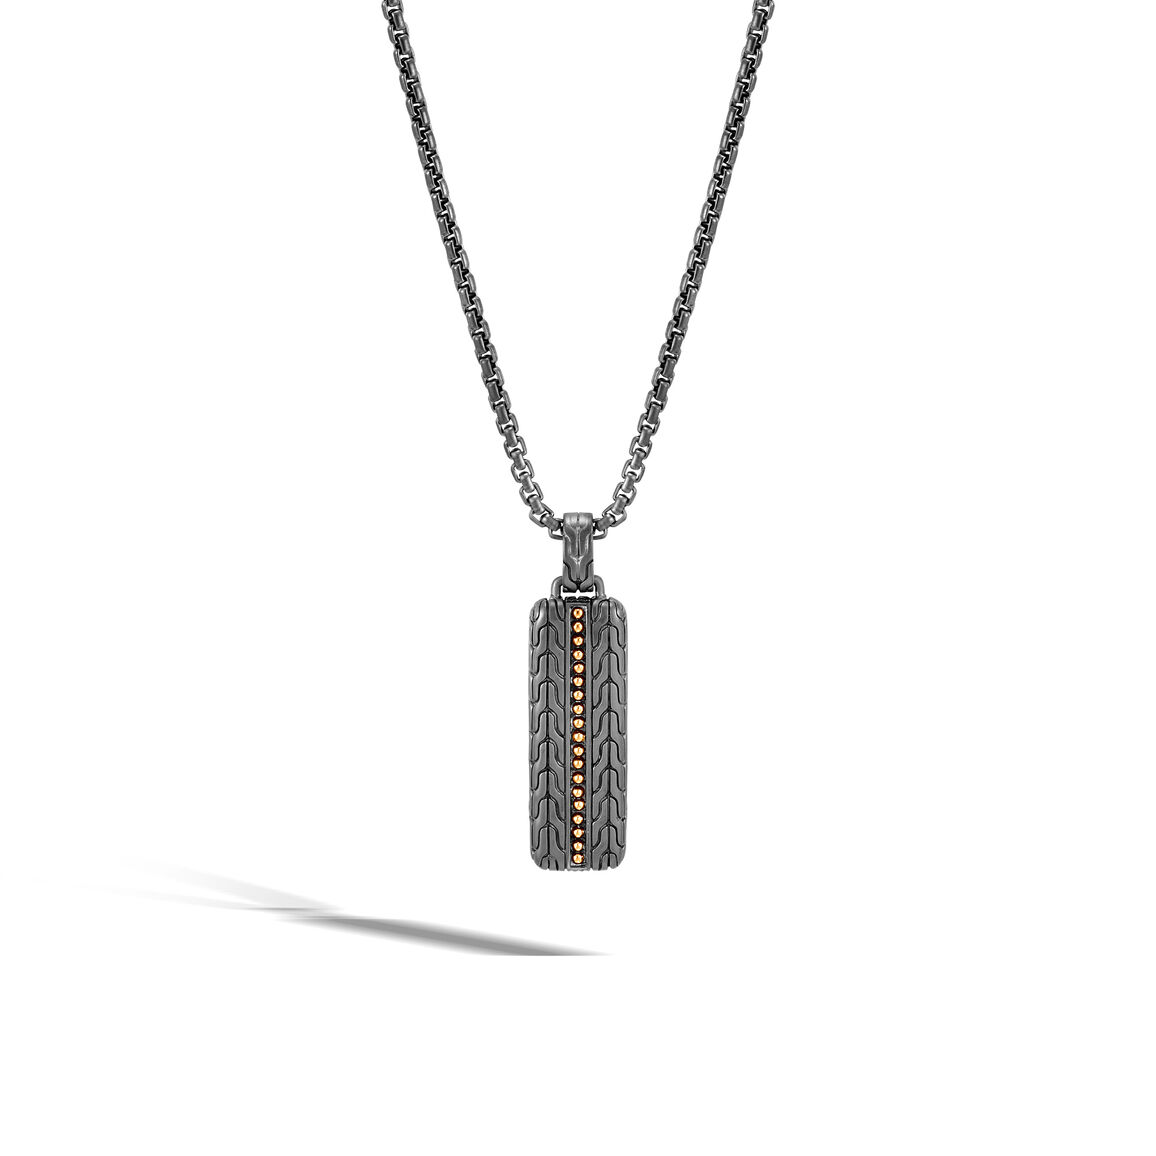 Chain Jawan Pendant Necklace in Blackened Silver, 18K Gold